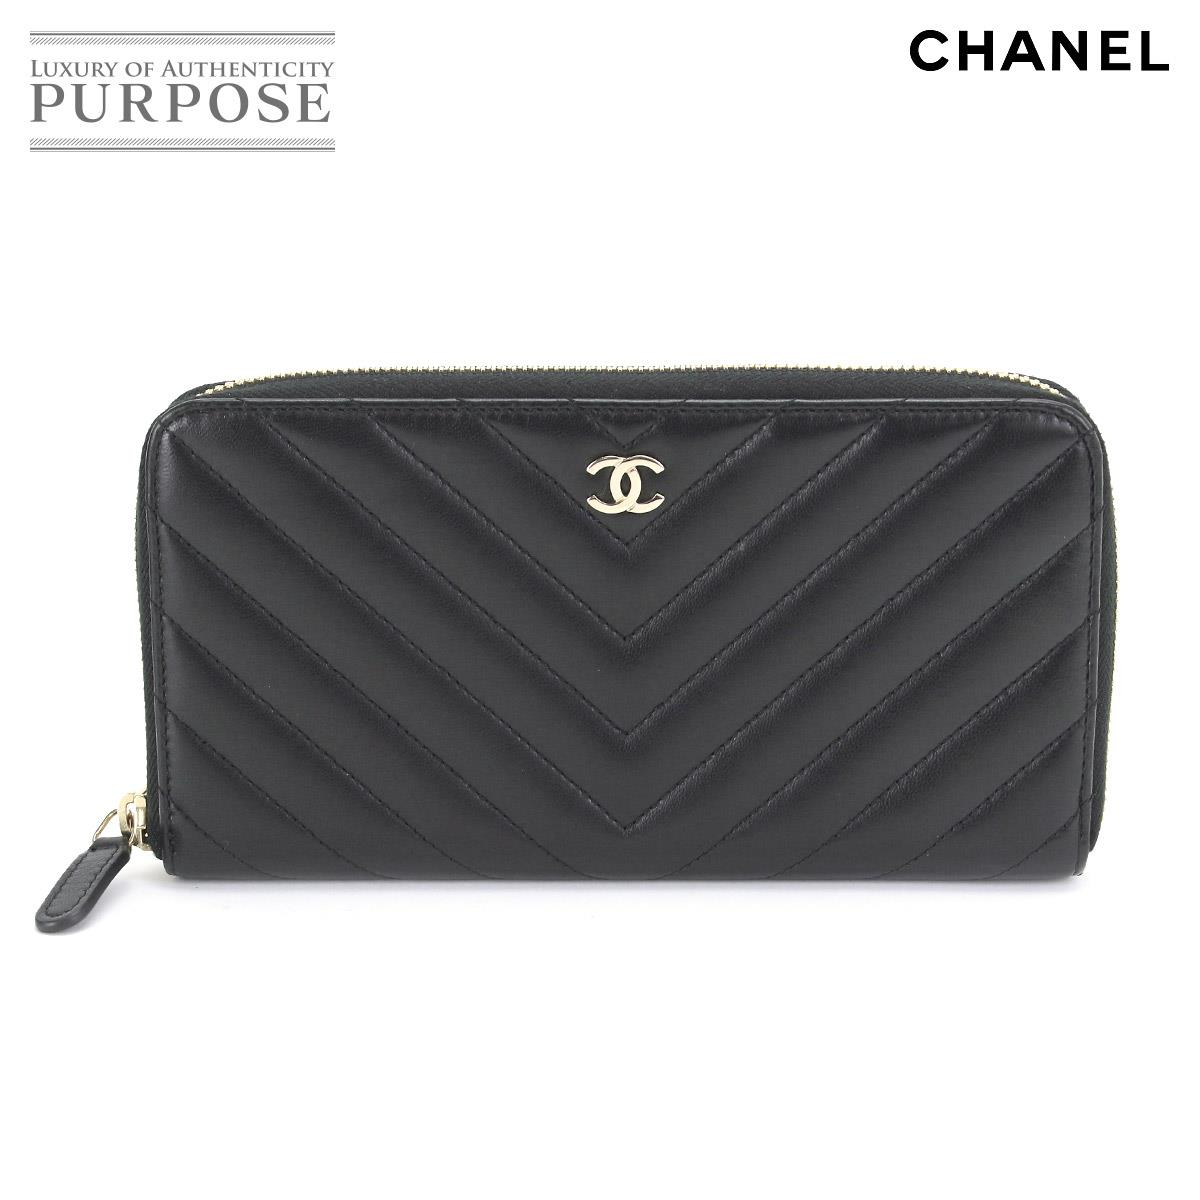 5919c107dd56f5 Chanel CHANEL Chevron round fastener long wallet leather black A50097 V  stitch gold metal fittings [used] brand